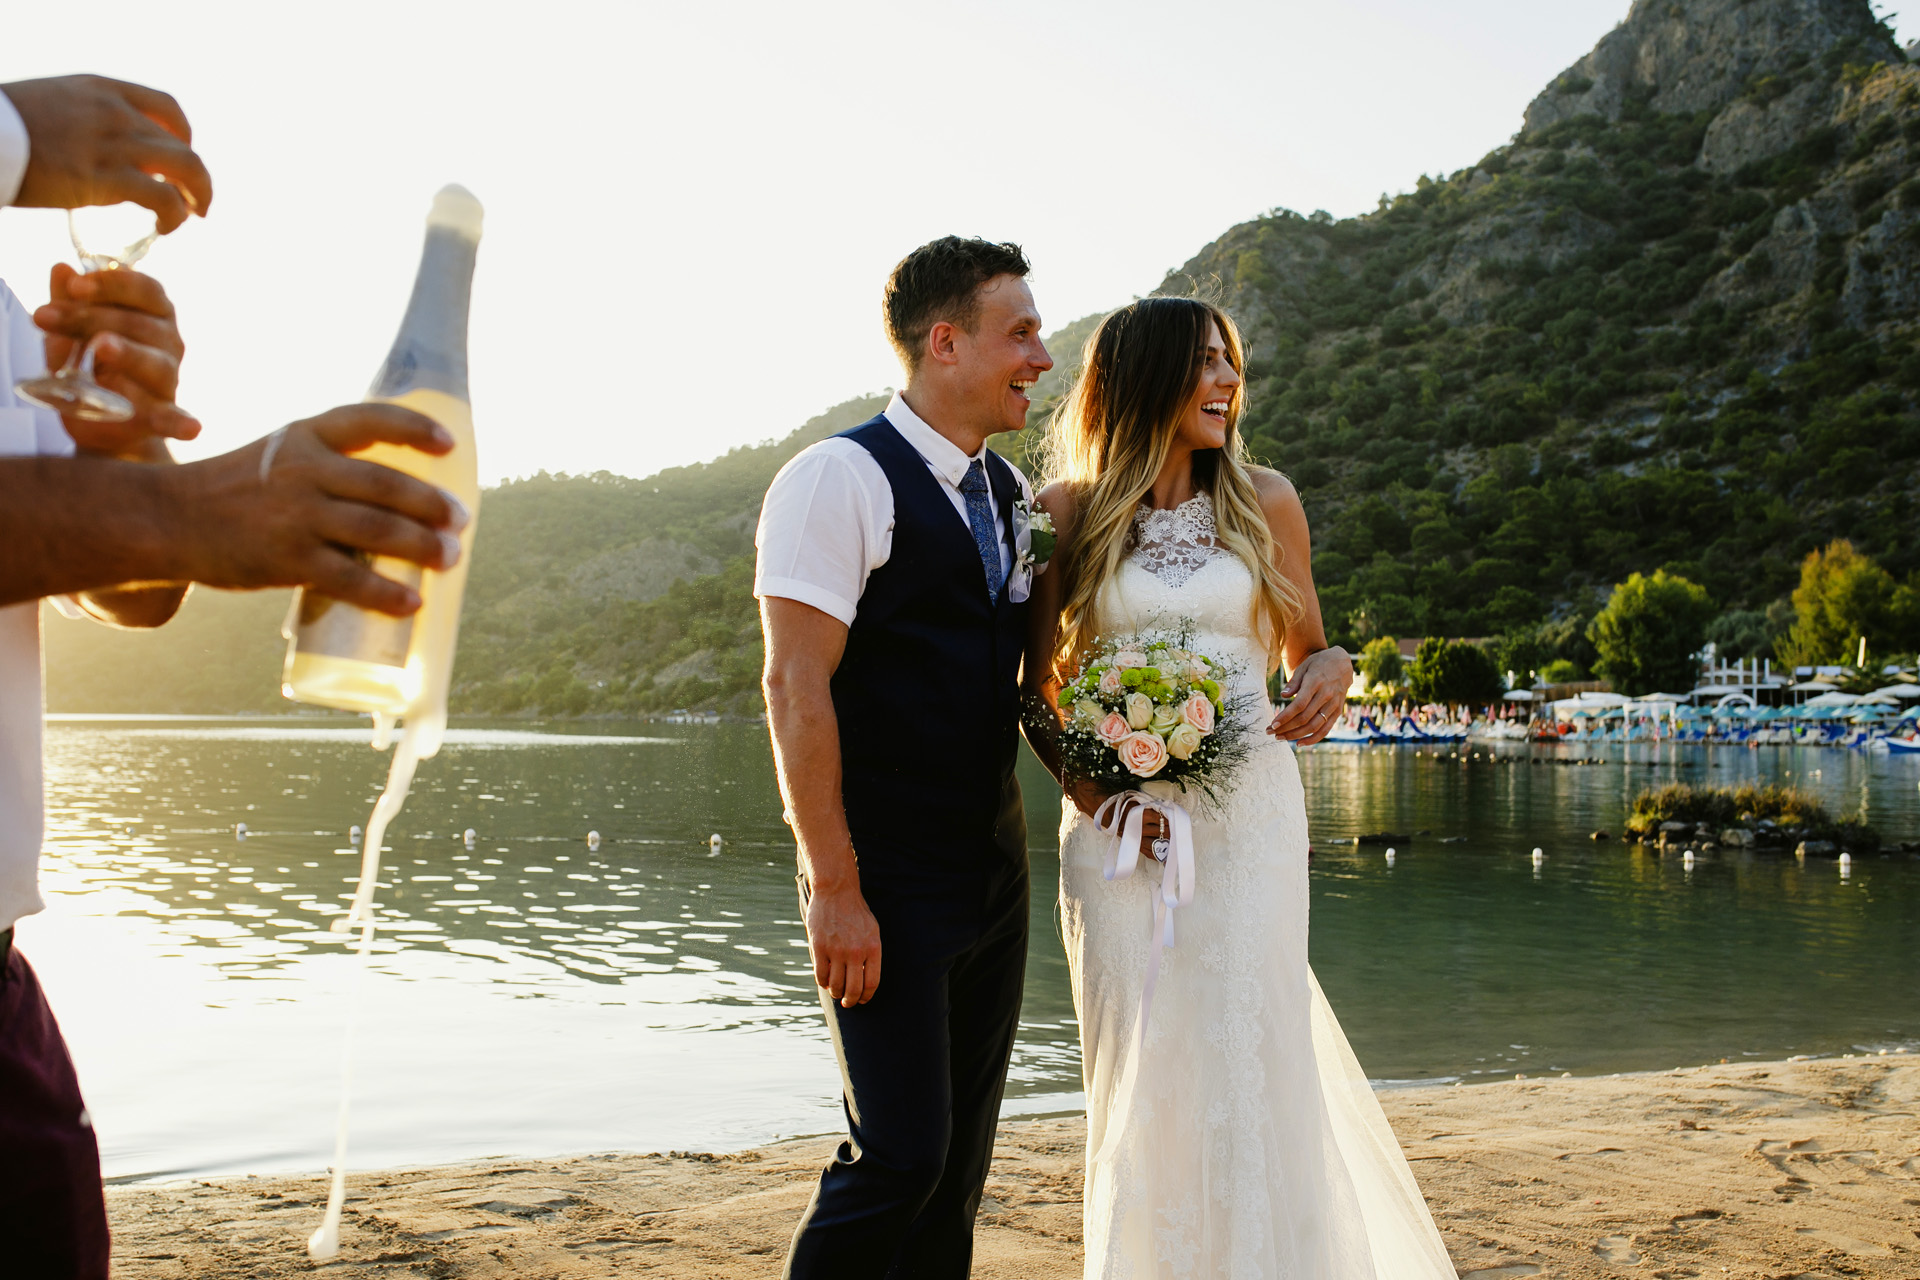 Turkey Sea Horse Beach Club Elopement Ceremony Picture | The guests preferred to spend some more time on the beach